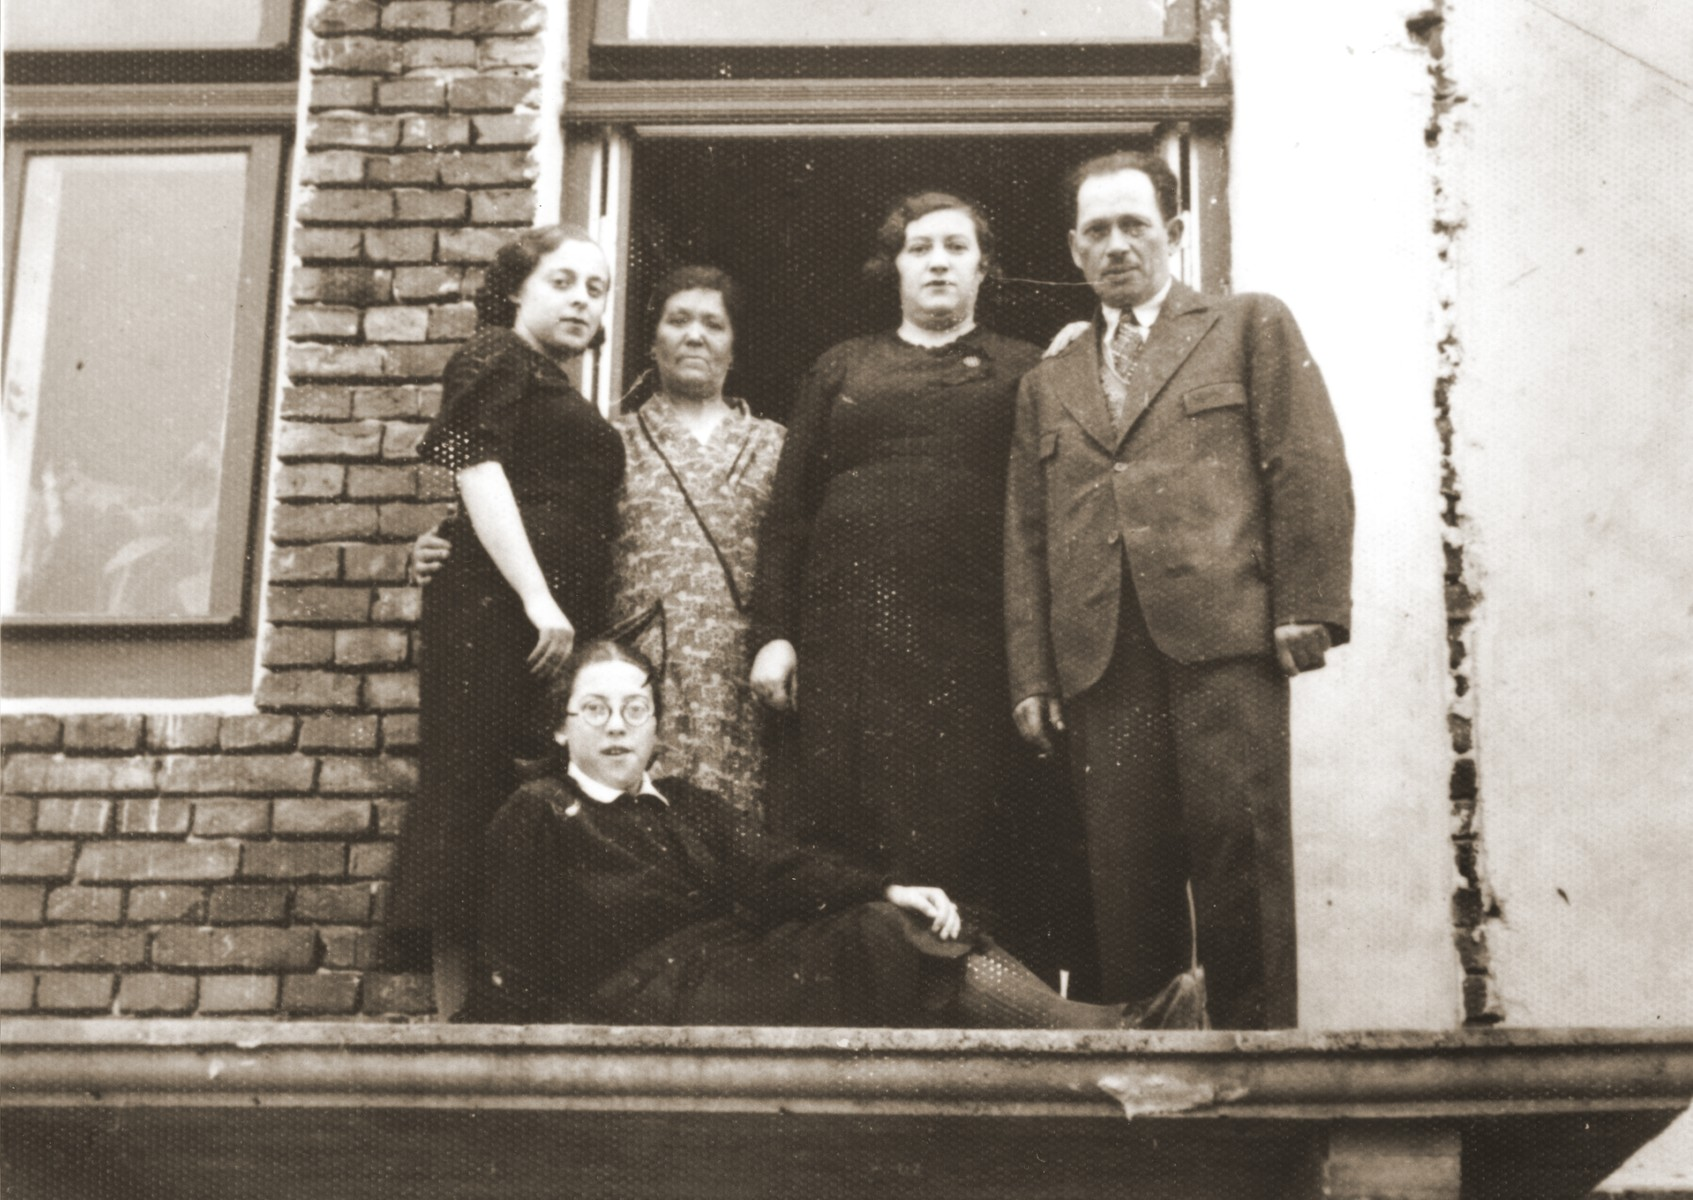 Members of the Berland family on the unfinished balcony of their home in Chelm.  Pictured standing from left to right are: Hela Zonenszein; Chaya Rachel Hilf; Sara Berland and Abraham Berland.  Felicja Berland lies in front of them.